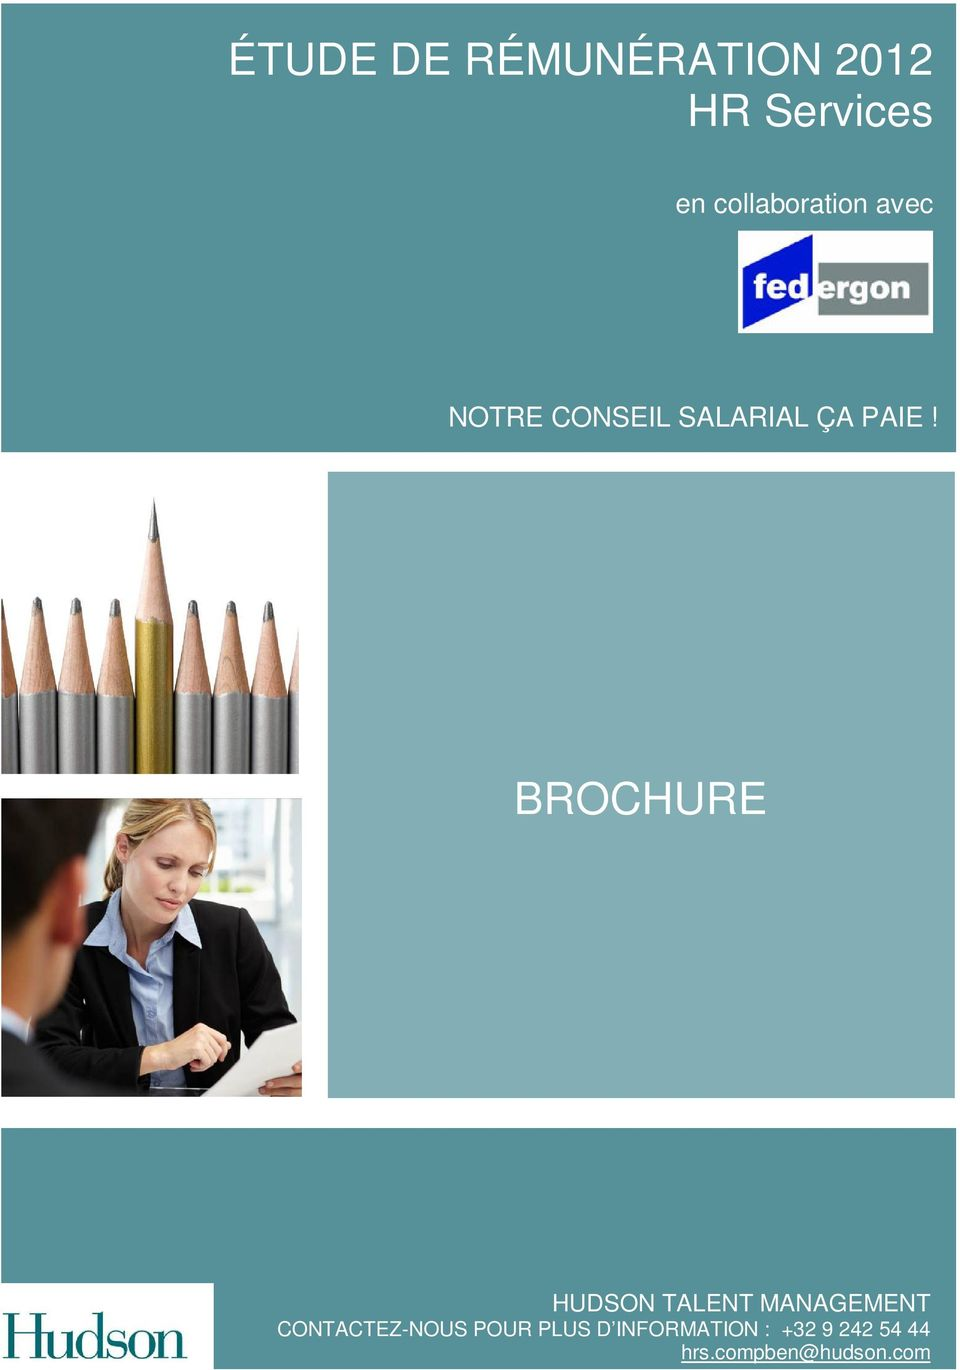 BROCHURE HUDSON TALENT MANAGEMENT CONTACTEZ-NOUS